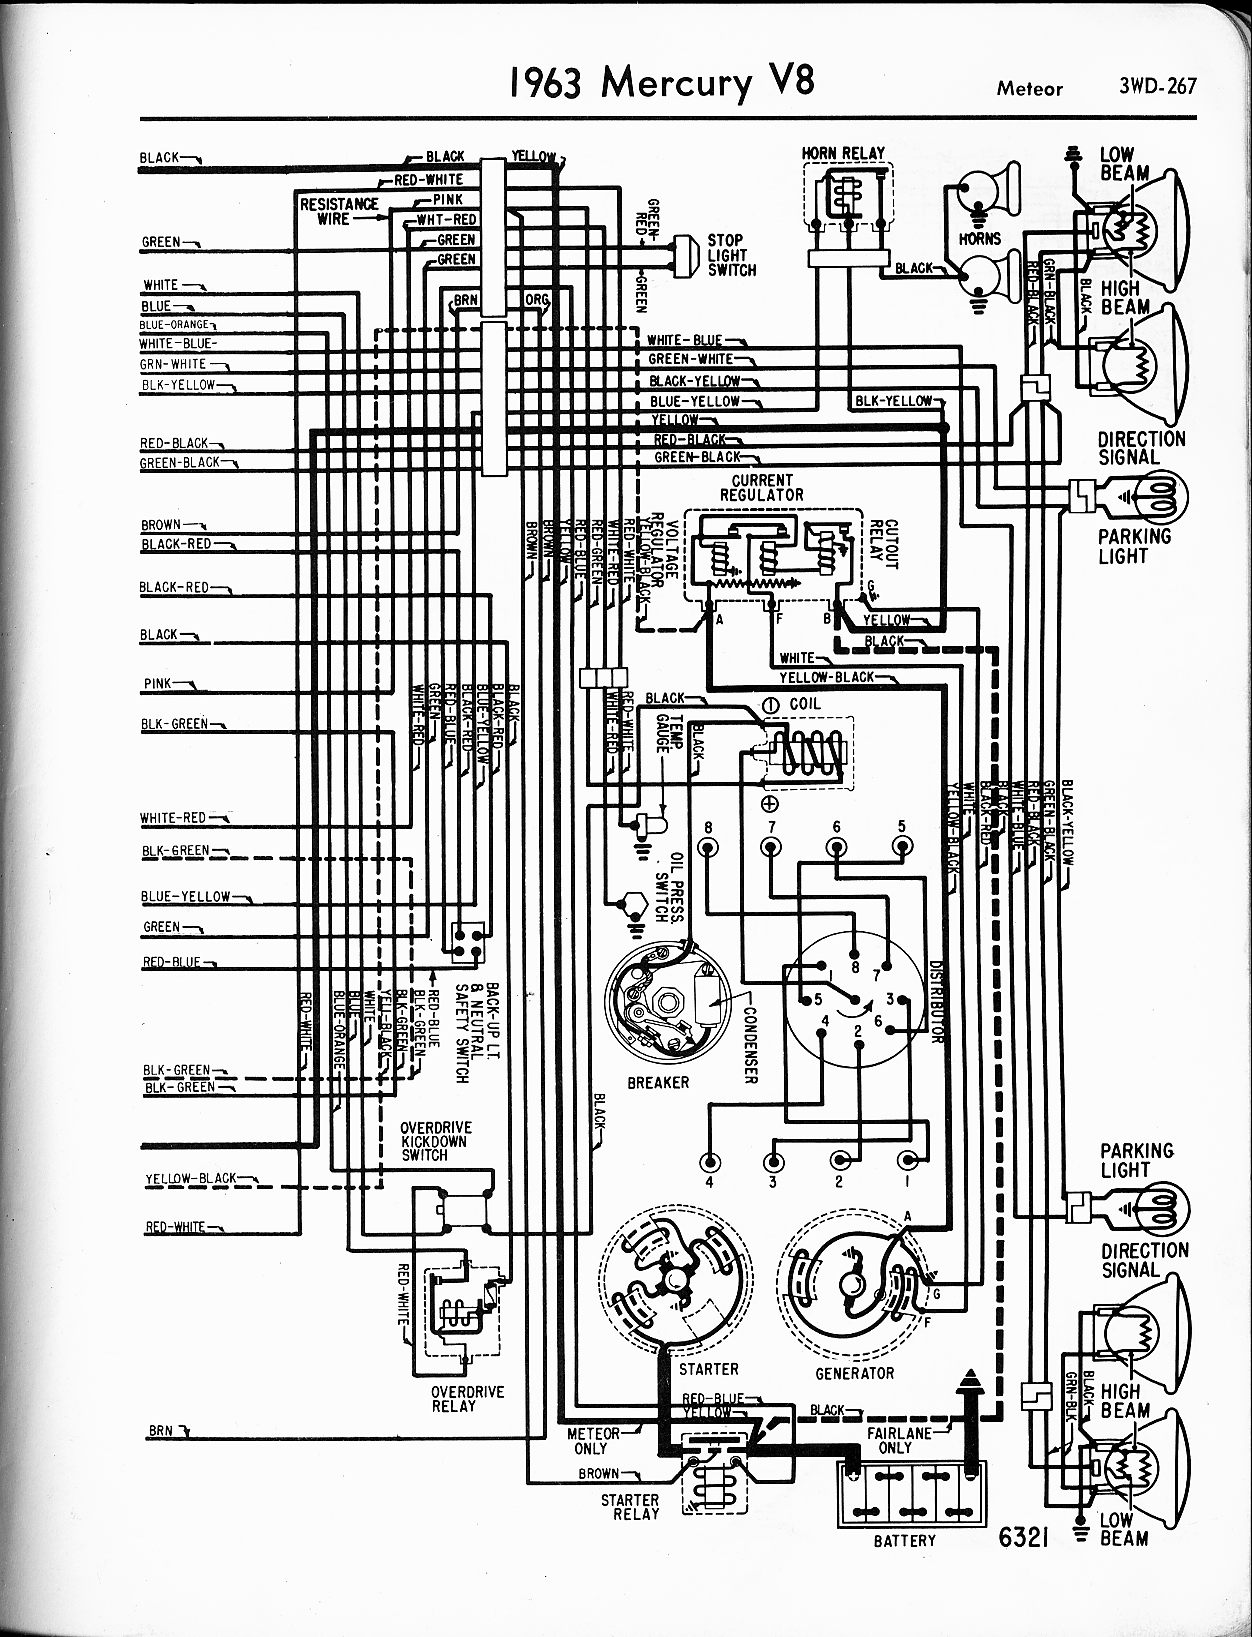 ... mercury wiring diagrams the old car manual project 1965 chevy c10 wiring diagram 1963 v8 meteor  sc 1 st  MiFinder : 1963 chevy truck wiring diagram - yogabreezes.com